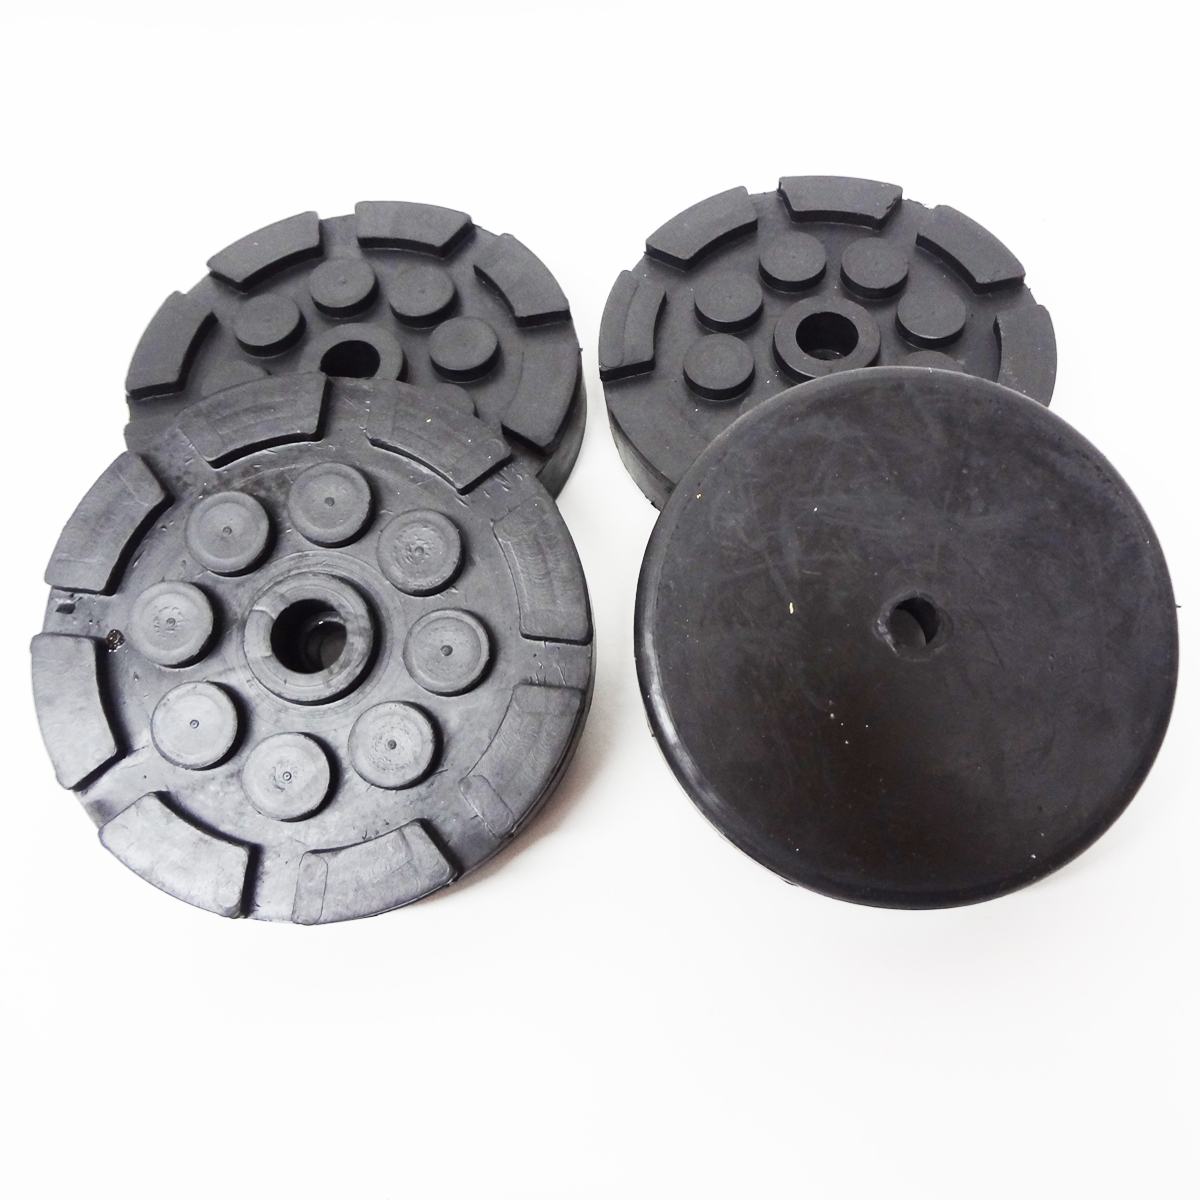 QUALITY LIFT ROUND RUBBER PADS for OLDER STYLE